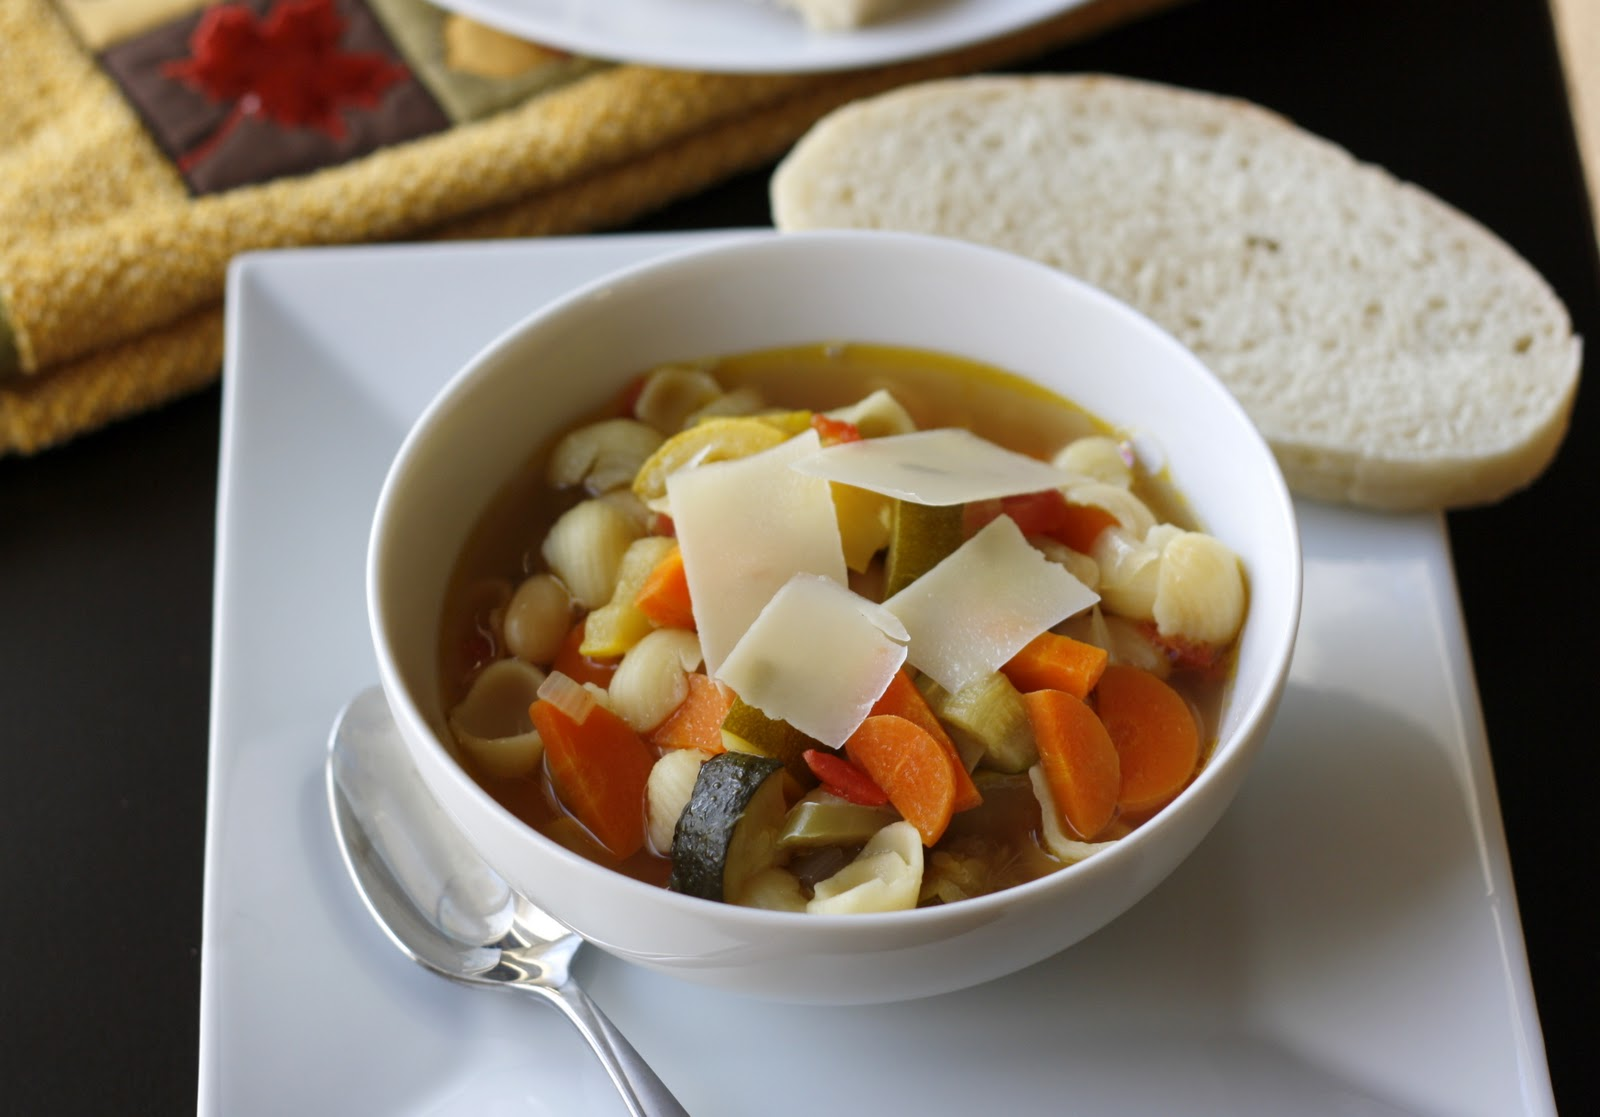 ... roasted vegetable roasted vegetable minestrone and roasted vegetables